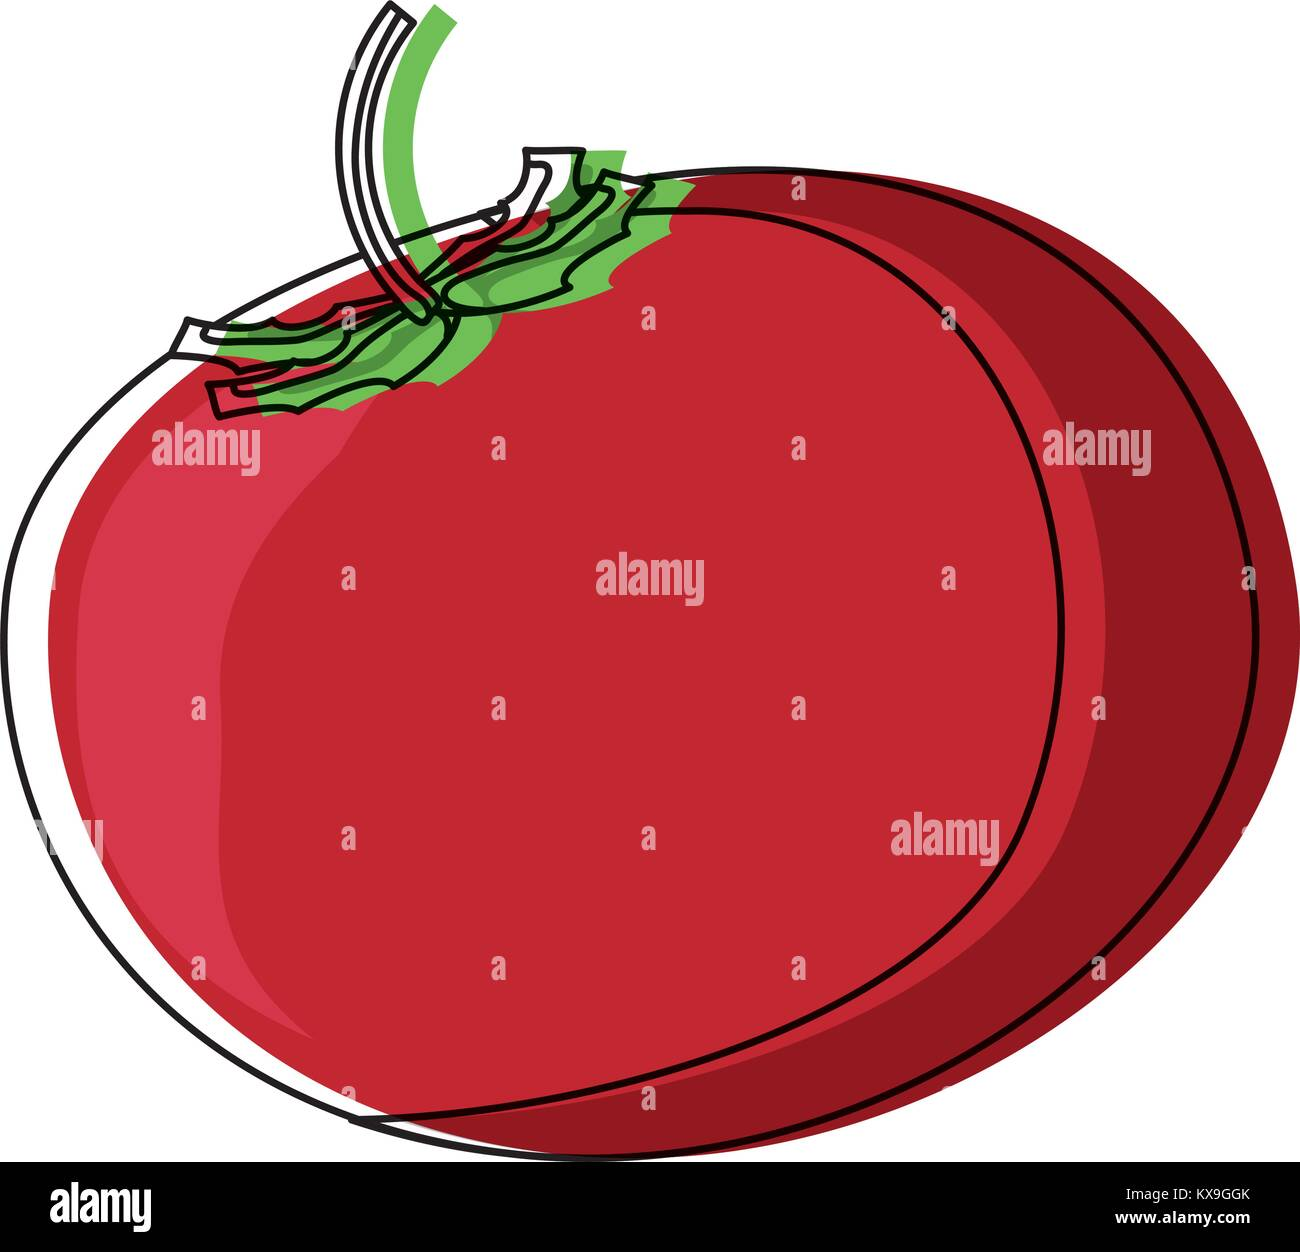 Field Tomato Stock Vector Images Alamy Plant Diagram Vegetable Icon